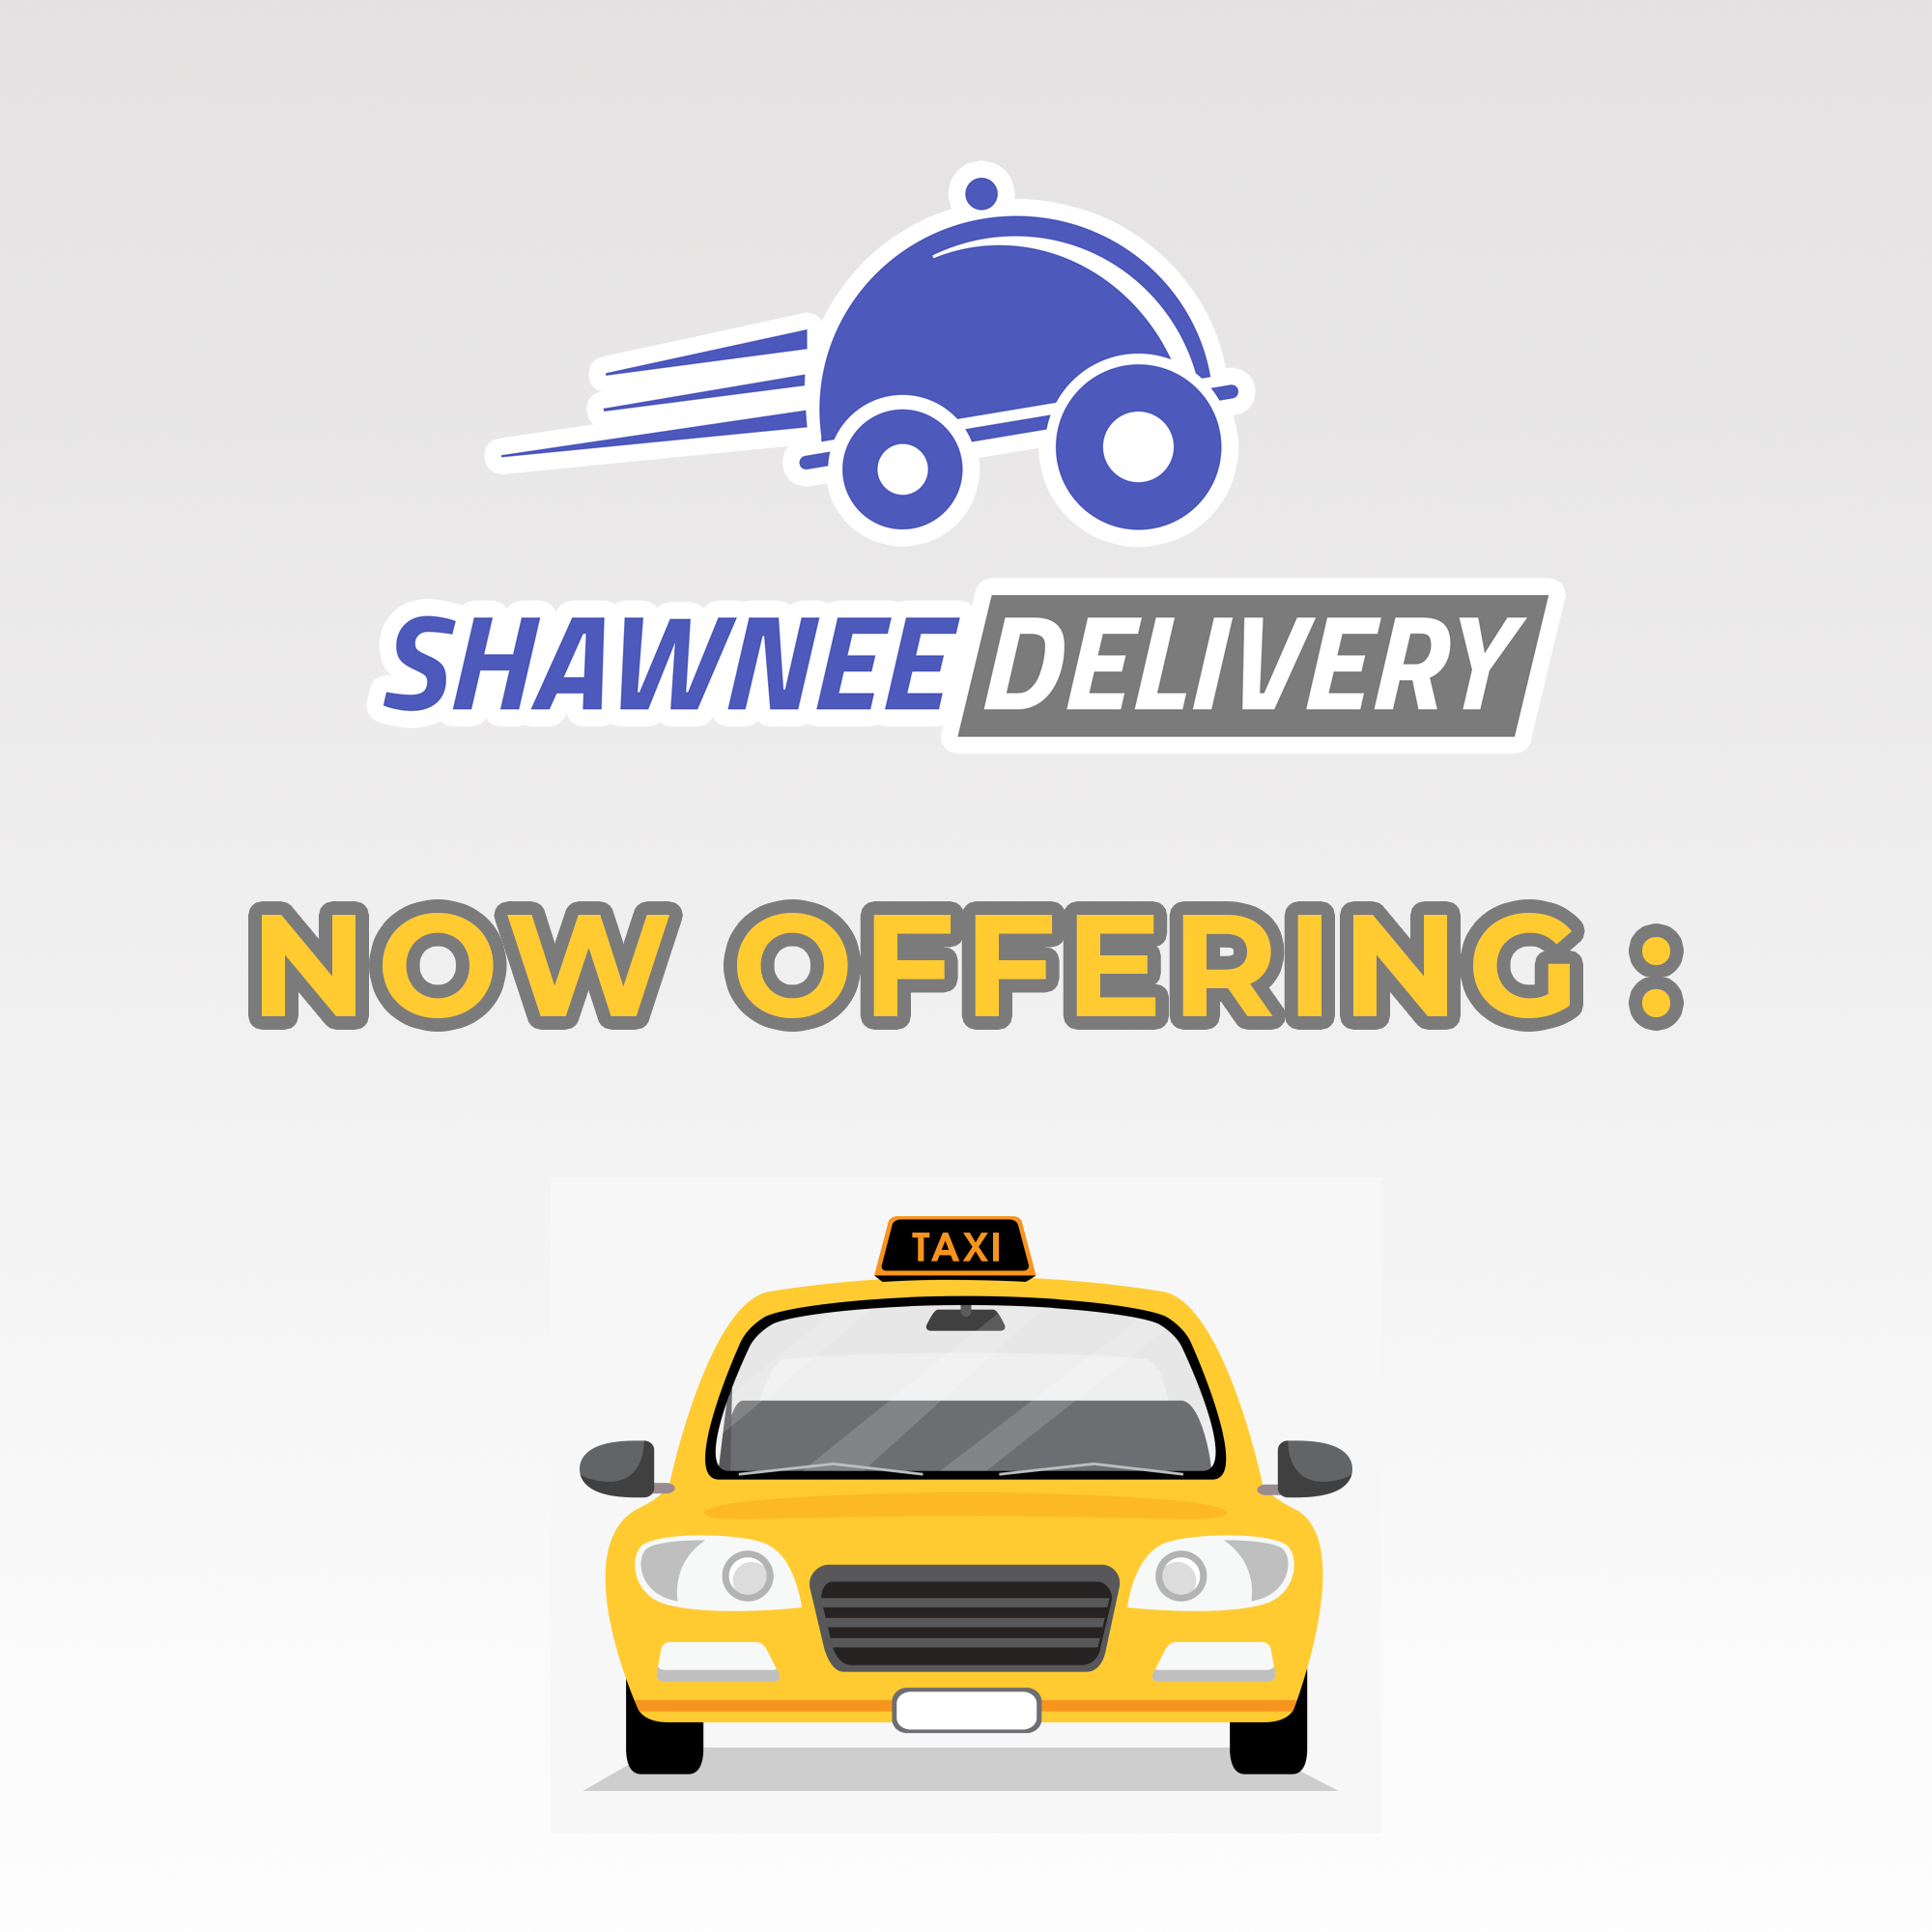 Buy a Ride - TAXI (Shawnee)